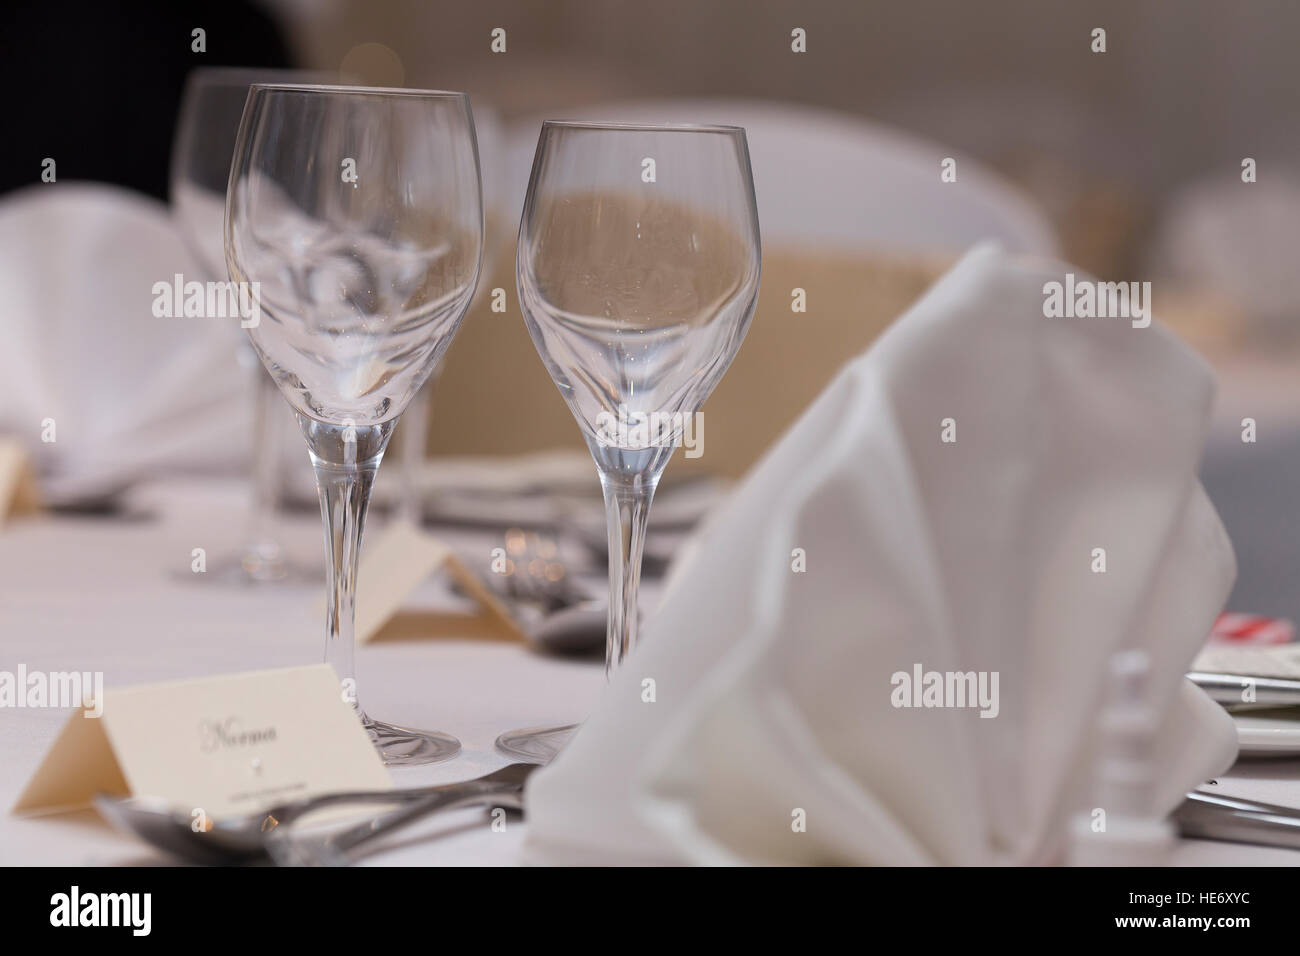 Dinner table set for wedding celebration with wine glasses, cutlery, white fan napkins and place name card - Stock Image